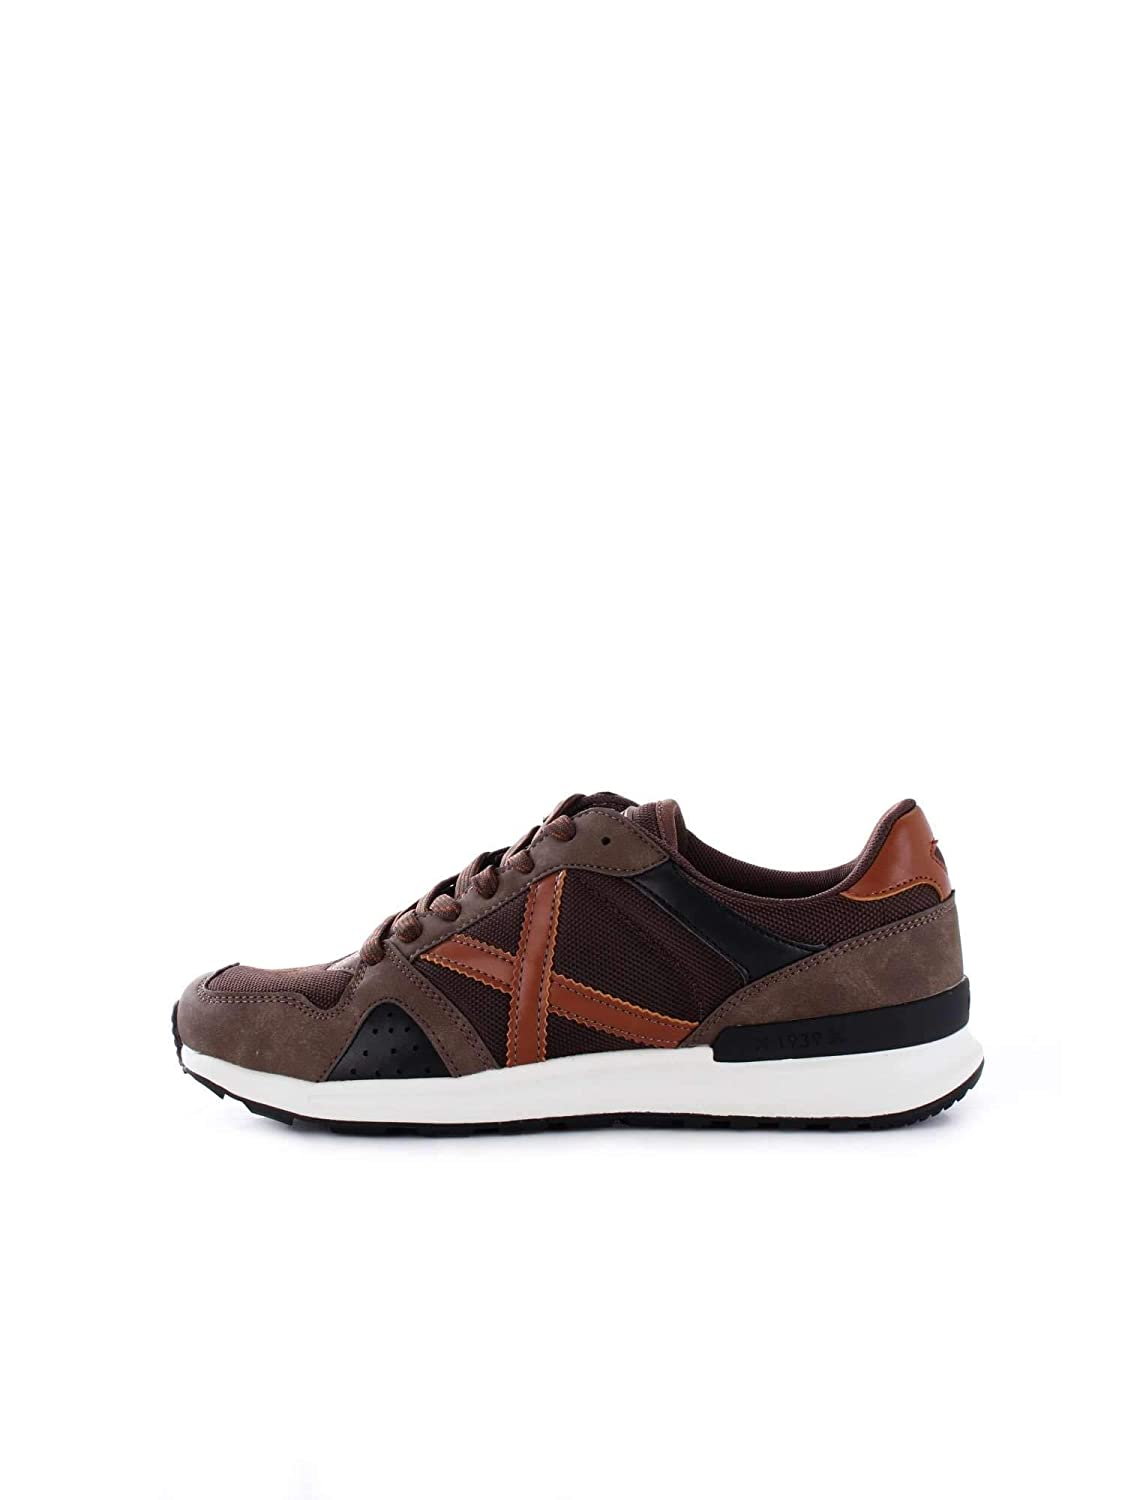 TALLA 45 EU. Zapatilla Munich Alpha 16 Brown